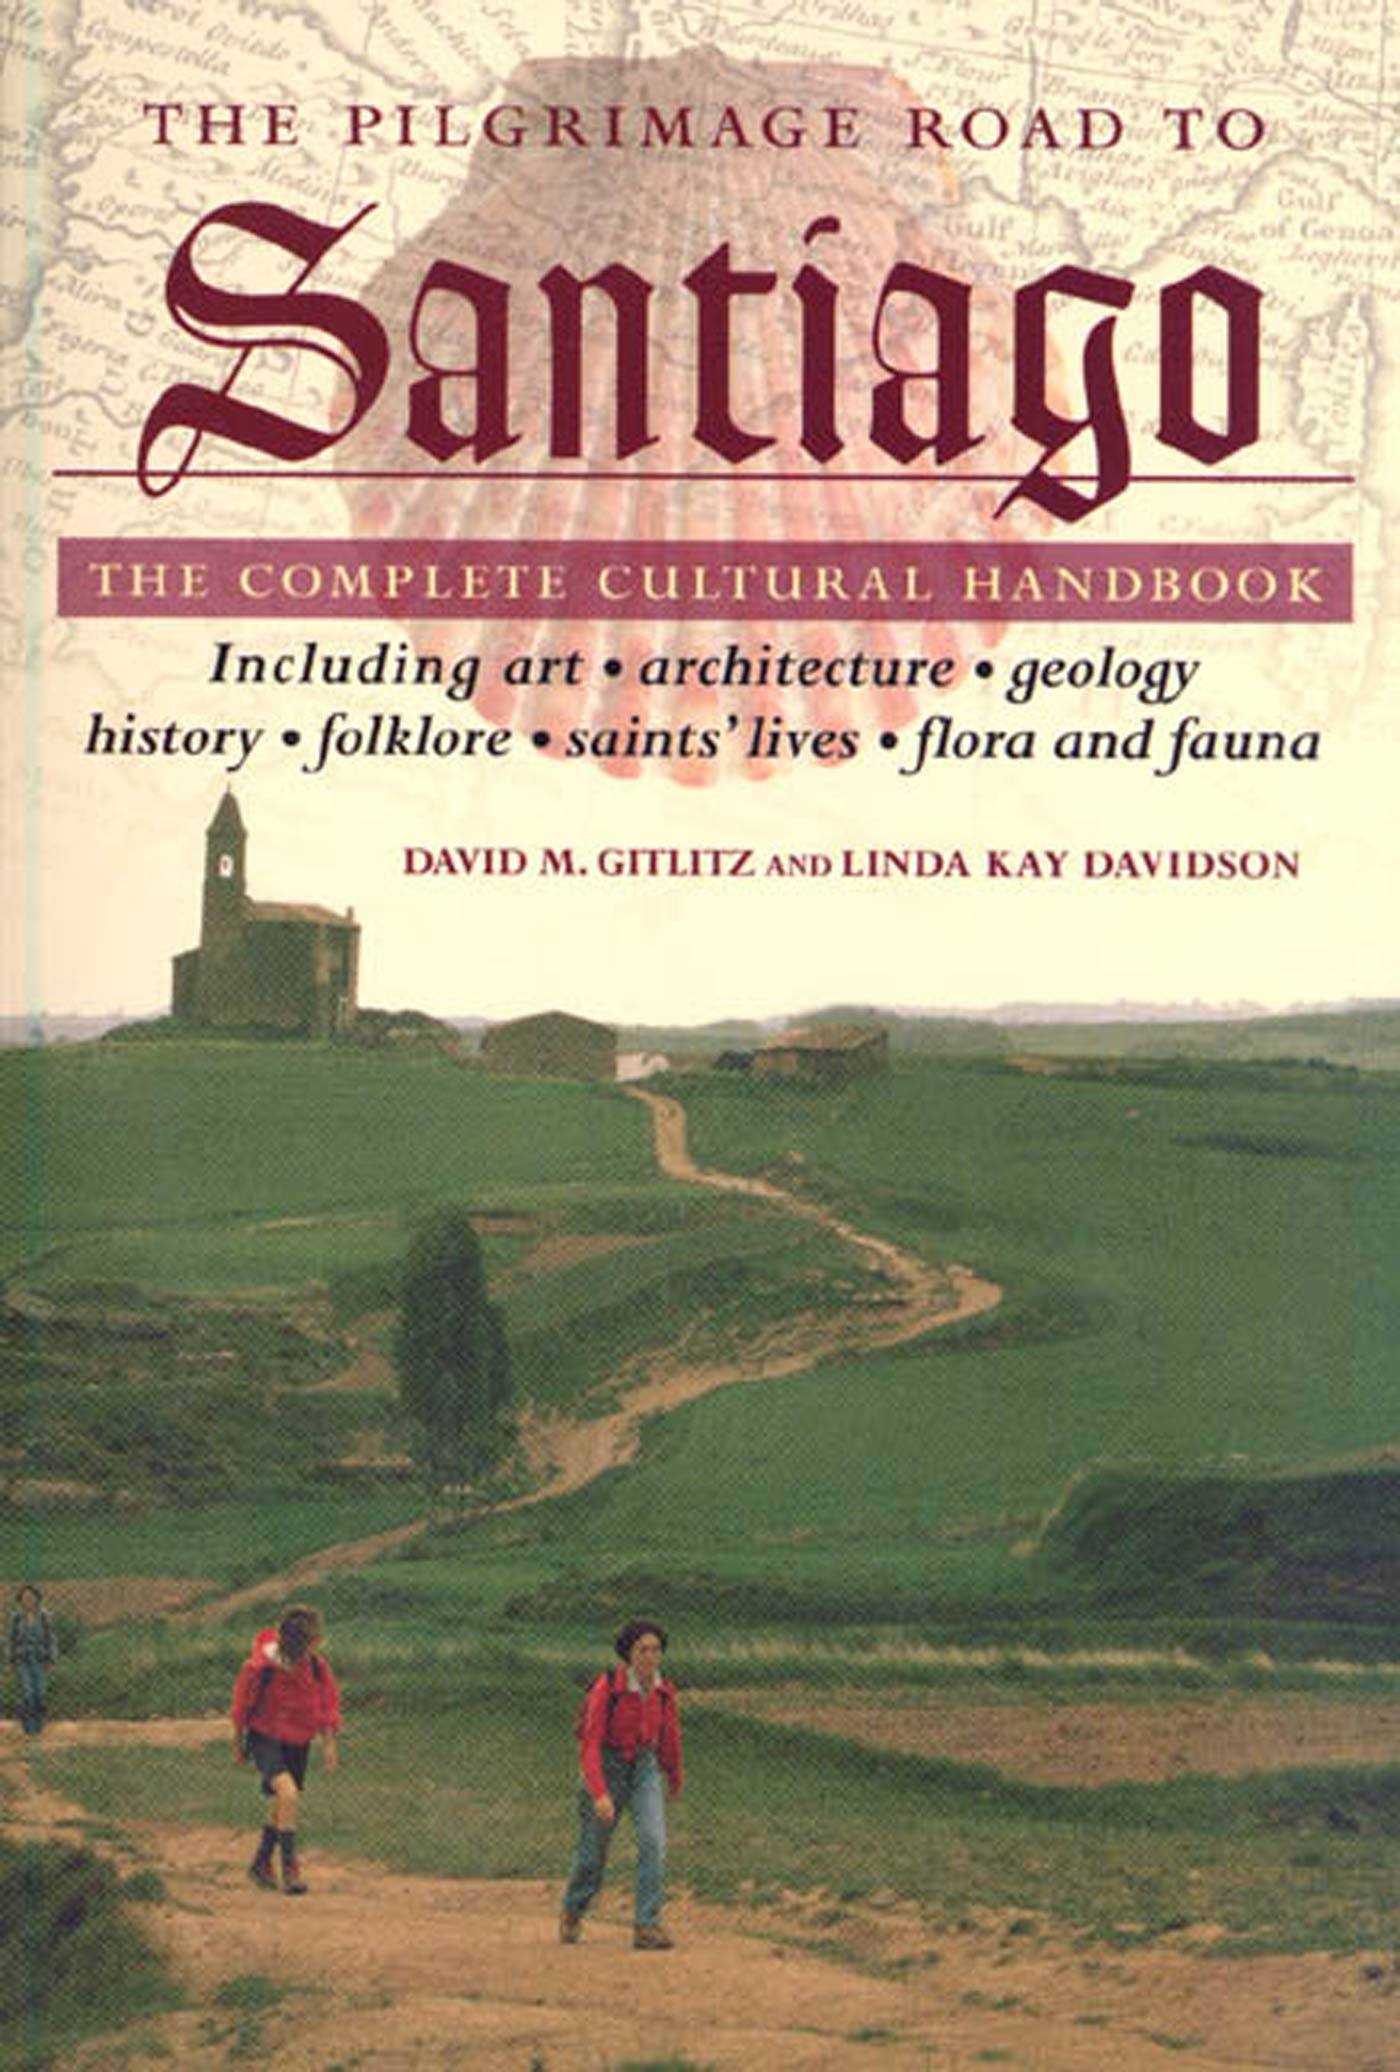 The Pilgrimage Road to Santiago